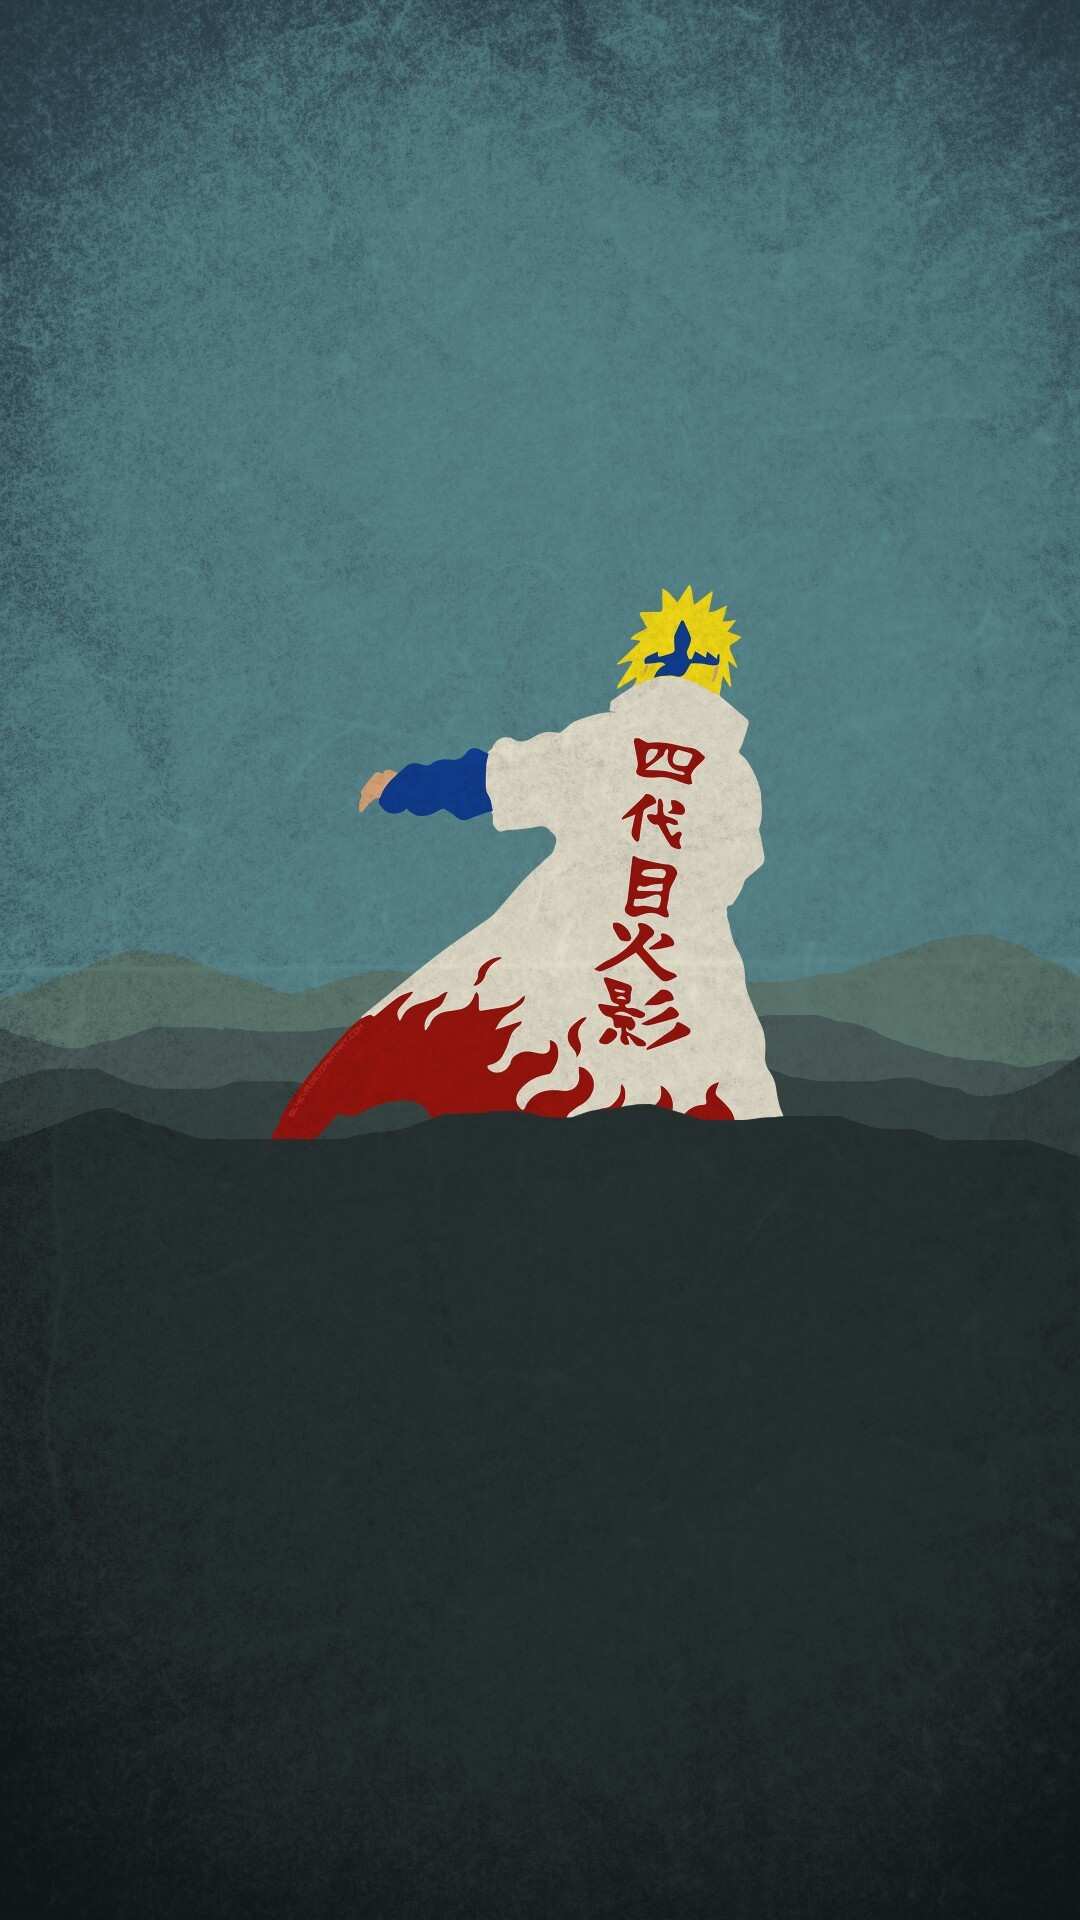 1080x1920 Naruto Minimalist Mobile Wallpaper